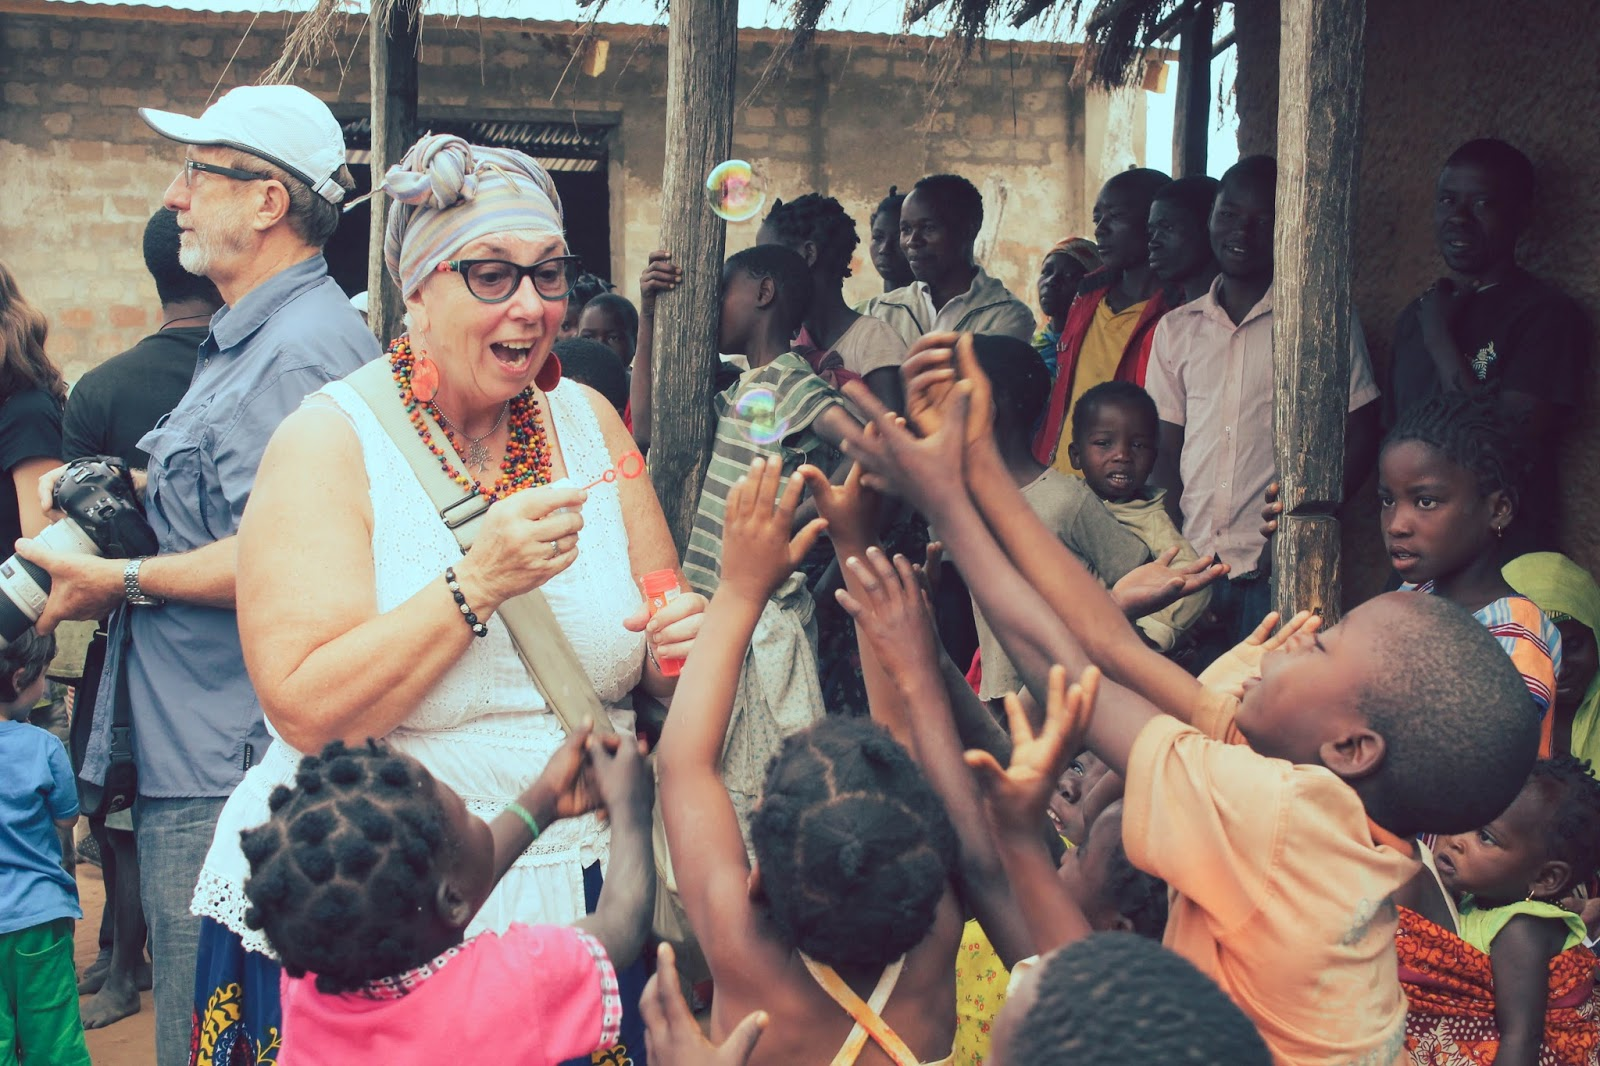 Laura Goes To Africa July 2015